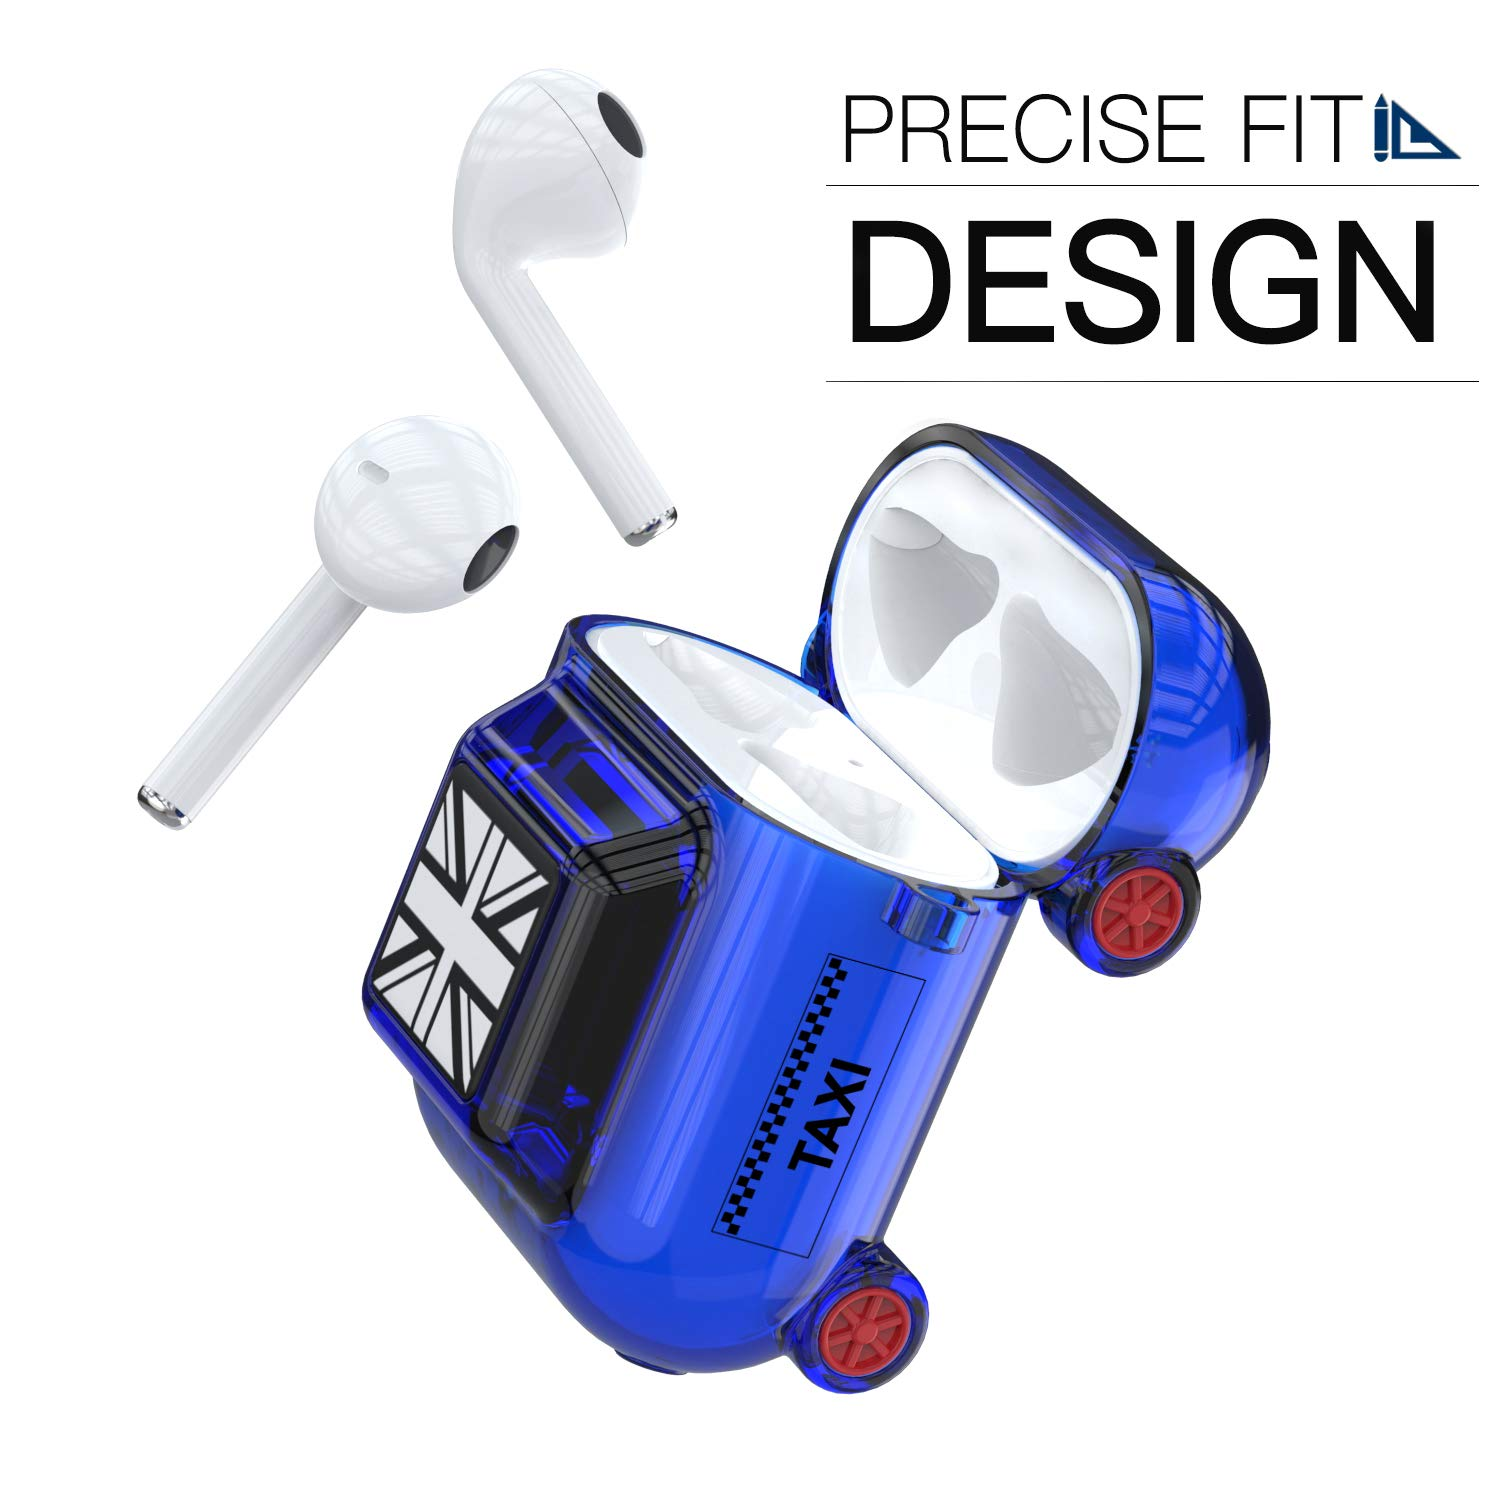 Airpods Case, AOJI Taxi Series Airpod Case Cover, Soft Thick TPU Shockproof Protective Case Compatible with Apple Airpods 1 & 2, Black (Blue)